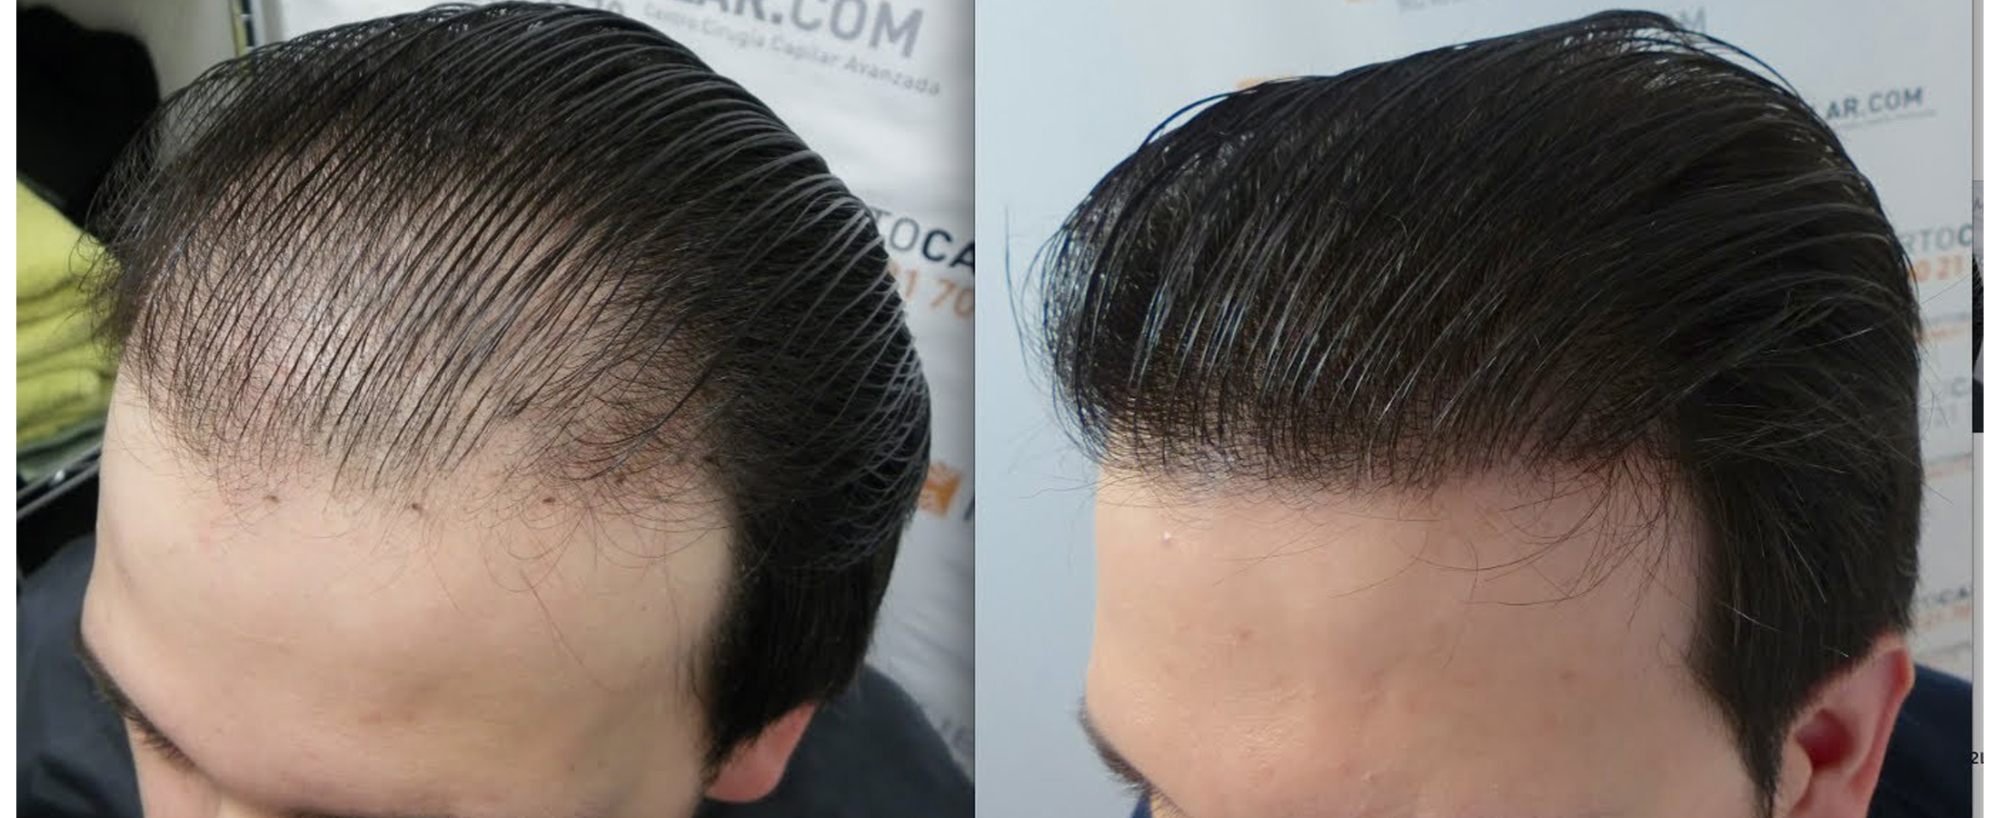 Best clinic for men baldness treatment in Hyderabad, hair loss treatment doctor near me